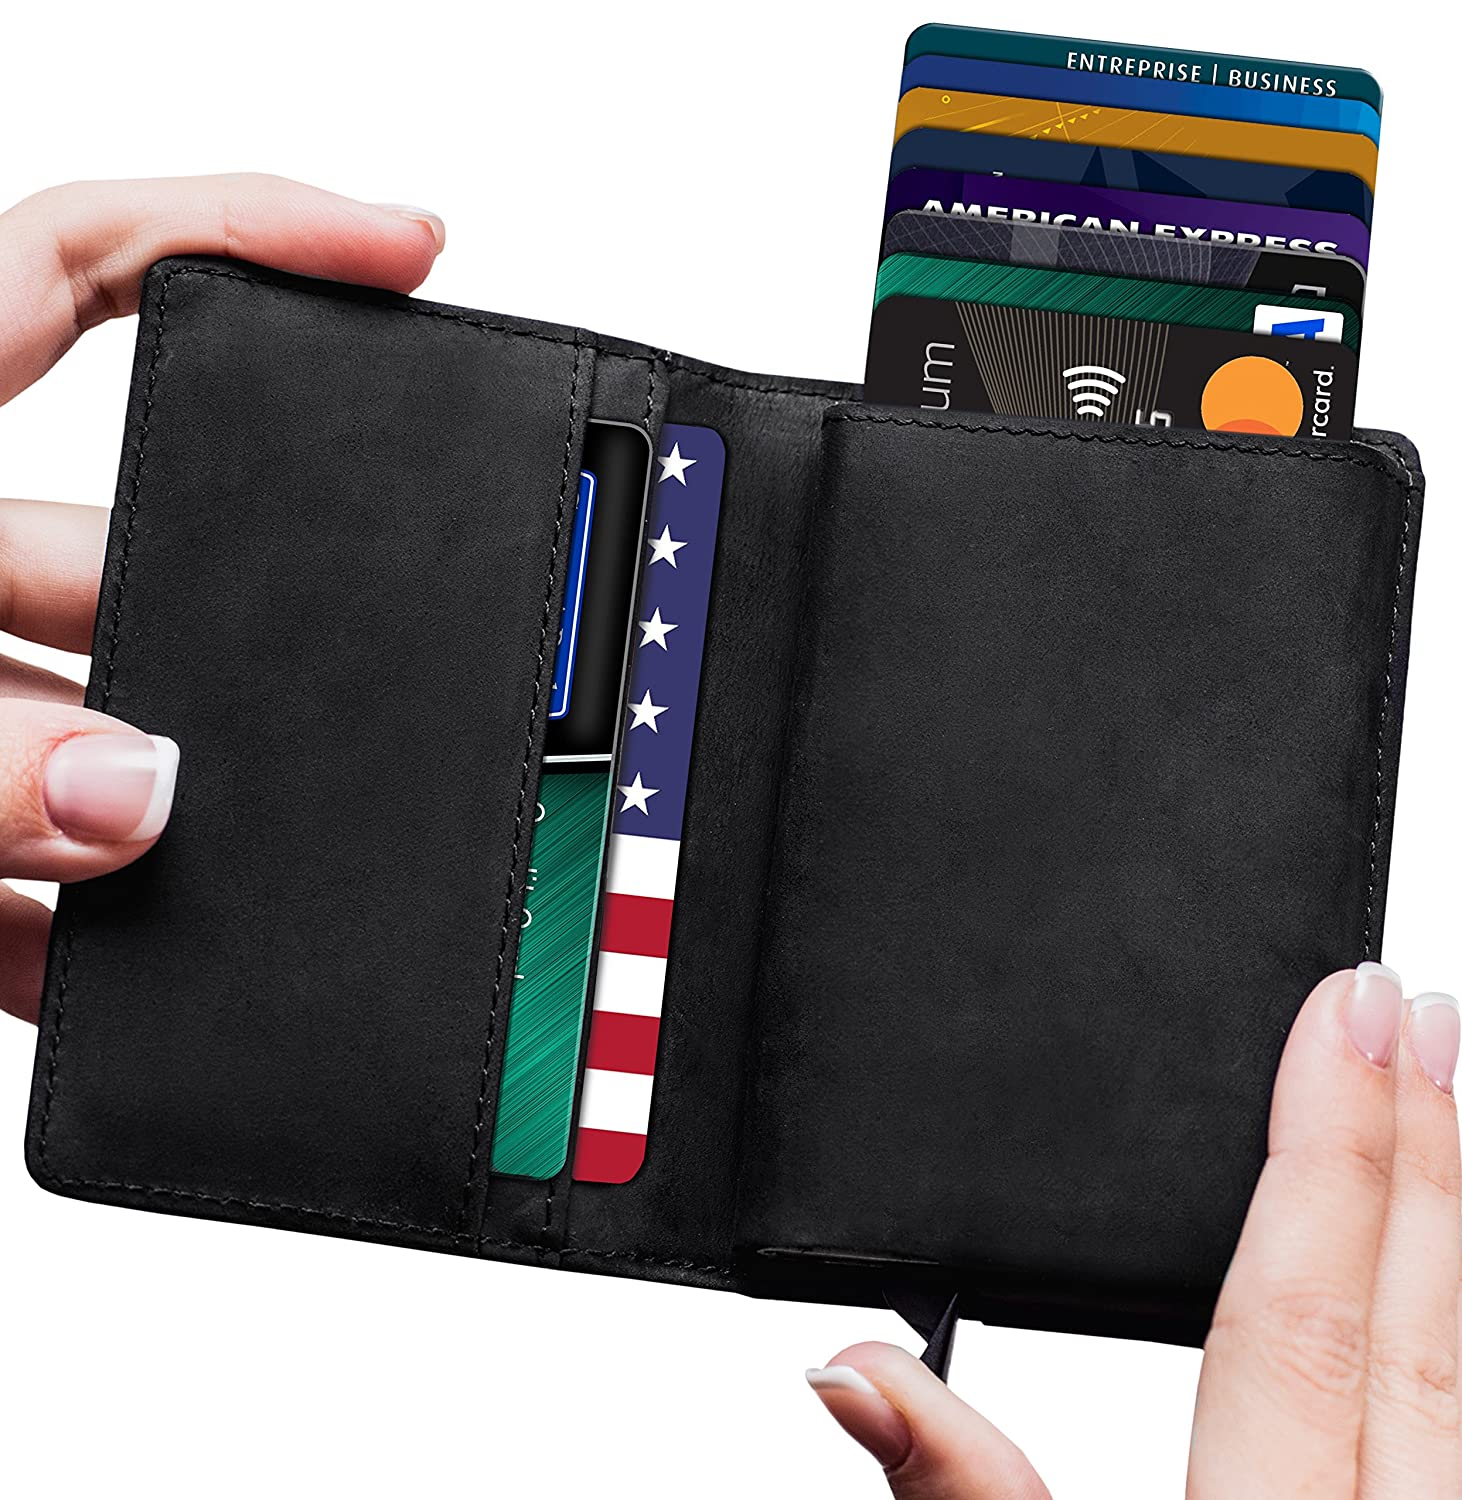 Lefada Us Men's Minimalist Leather Wallet RFID Blocking + Aluminum Card Holder v2.0